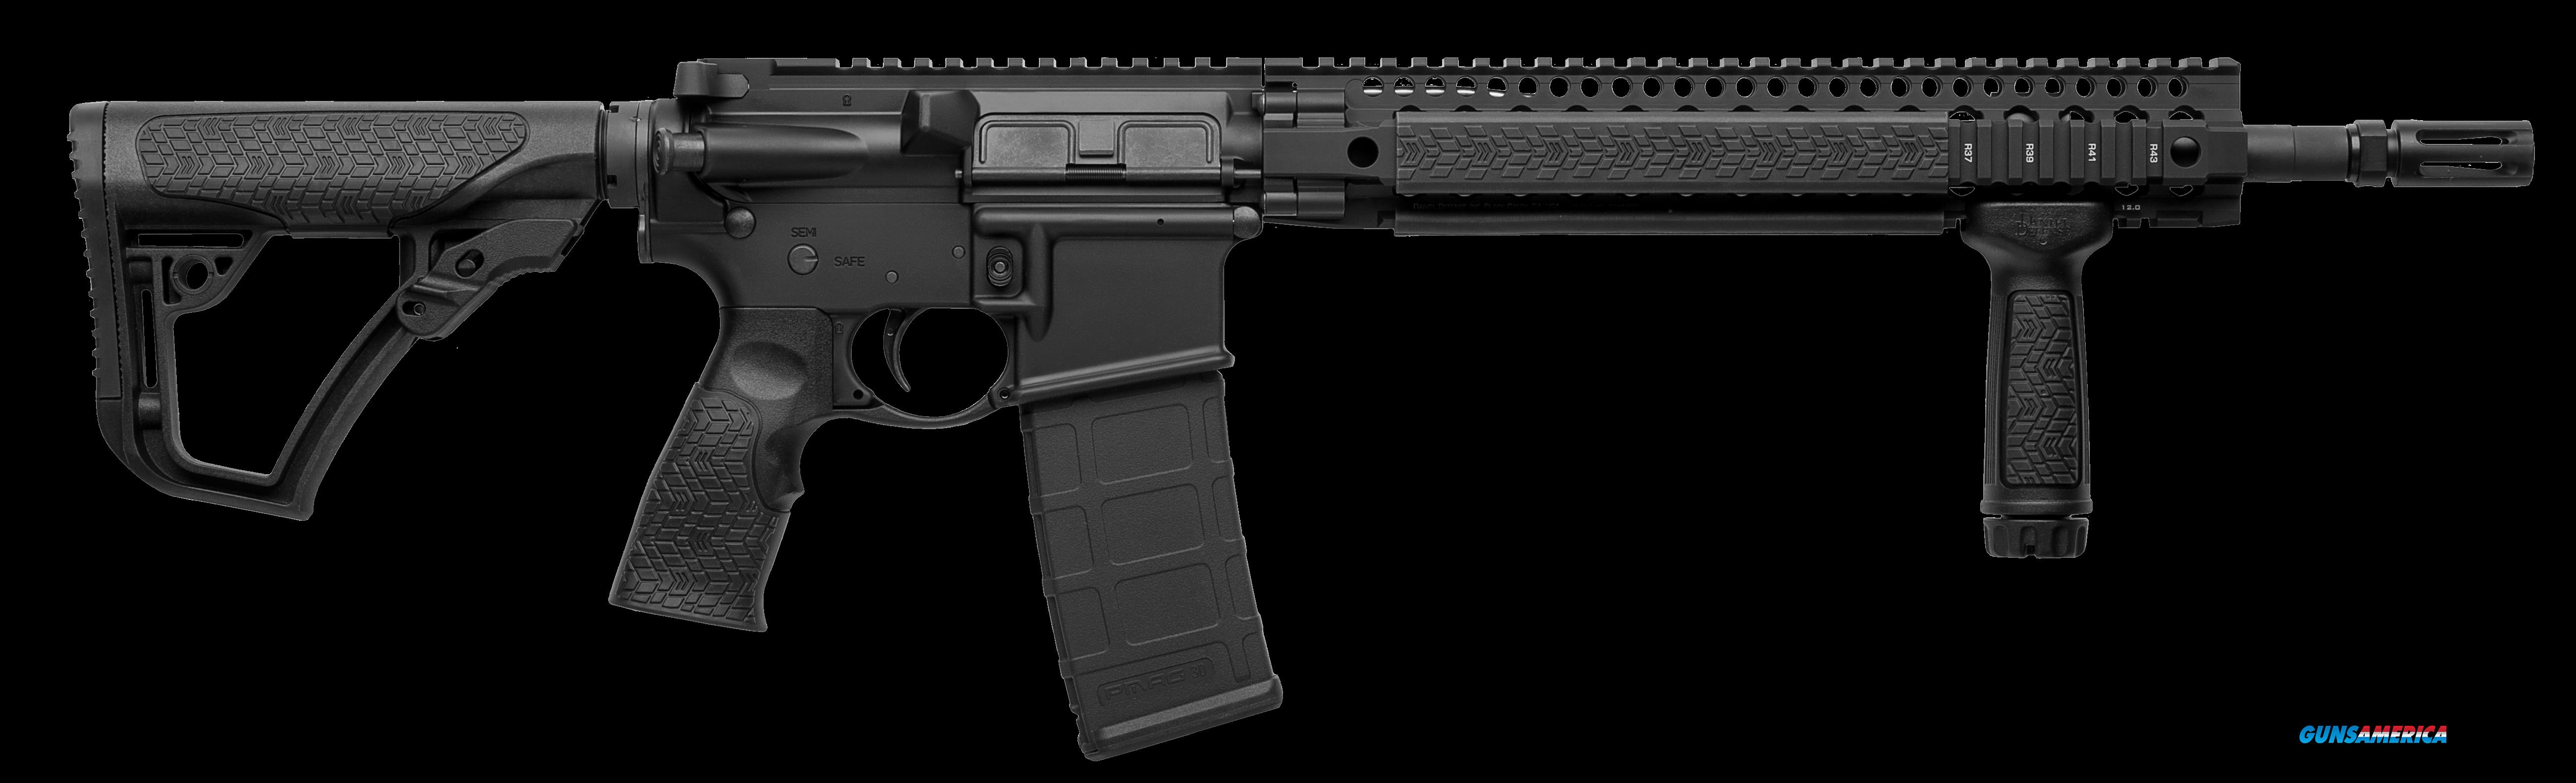 "Daniel Defense 02049047 DDM4 V5S Semi-Automatic 223 Remington/5.56 NATO 14.5"" 30+1 6-Position Black  Guns > Rifles > Daniel Defense > Complete Rifles"